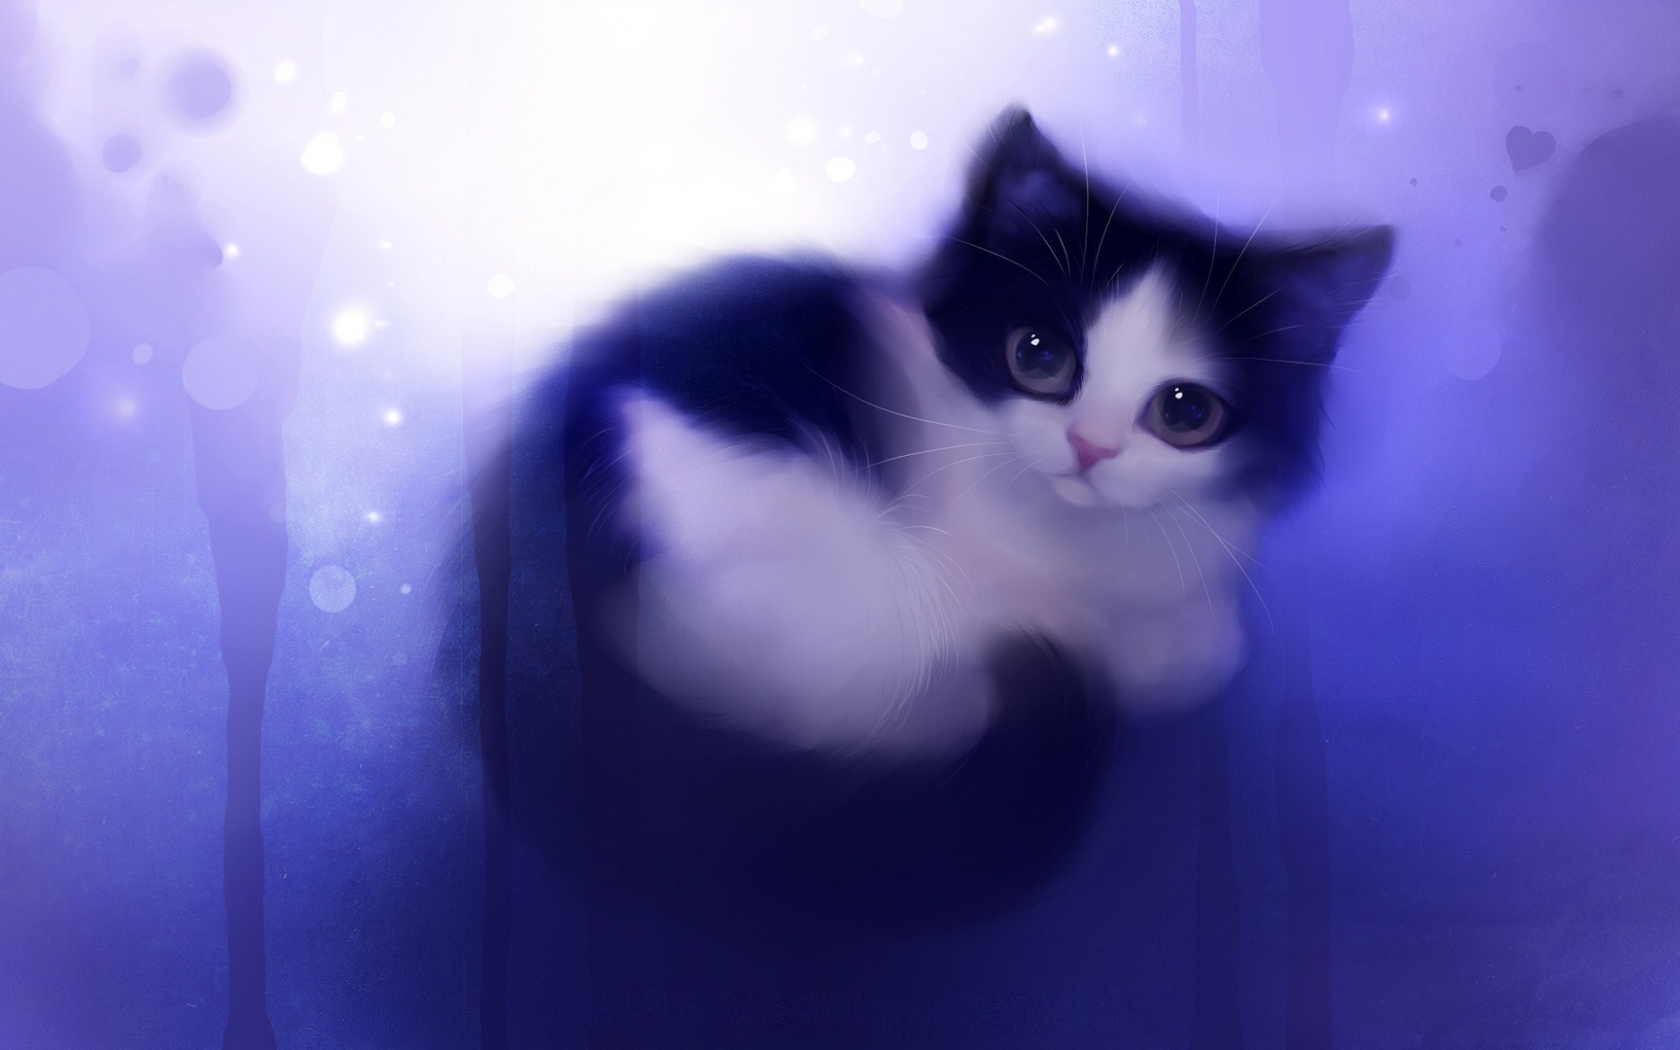 Free Download Adorable Cat Wallpaper Cute Wallpaper Share This